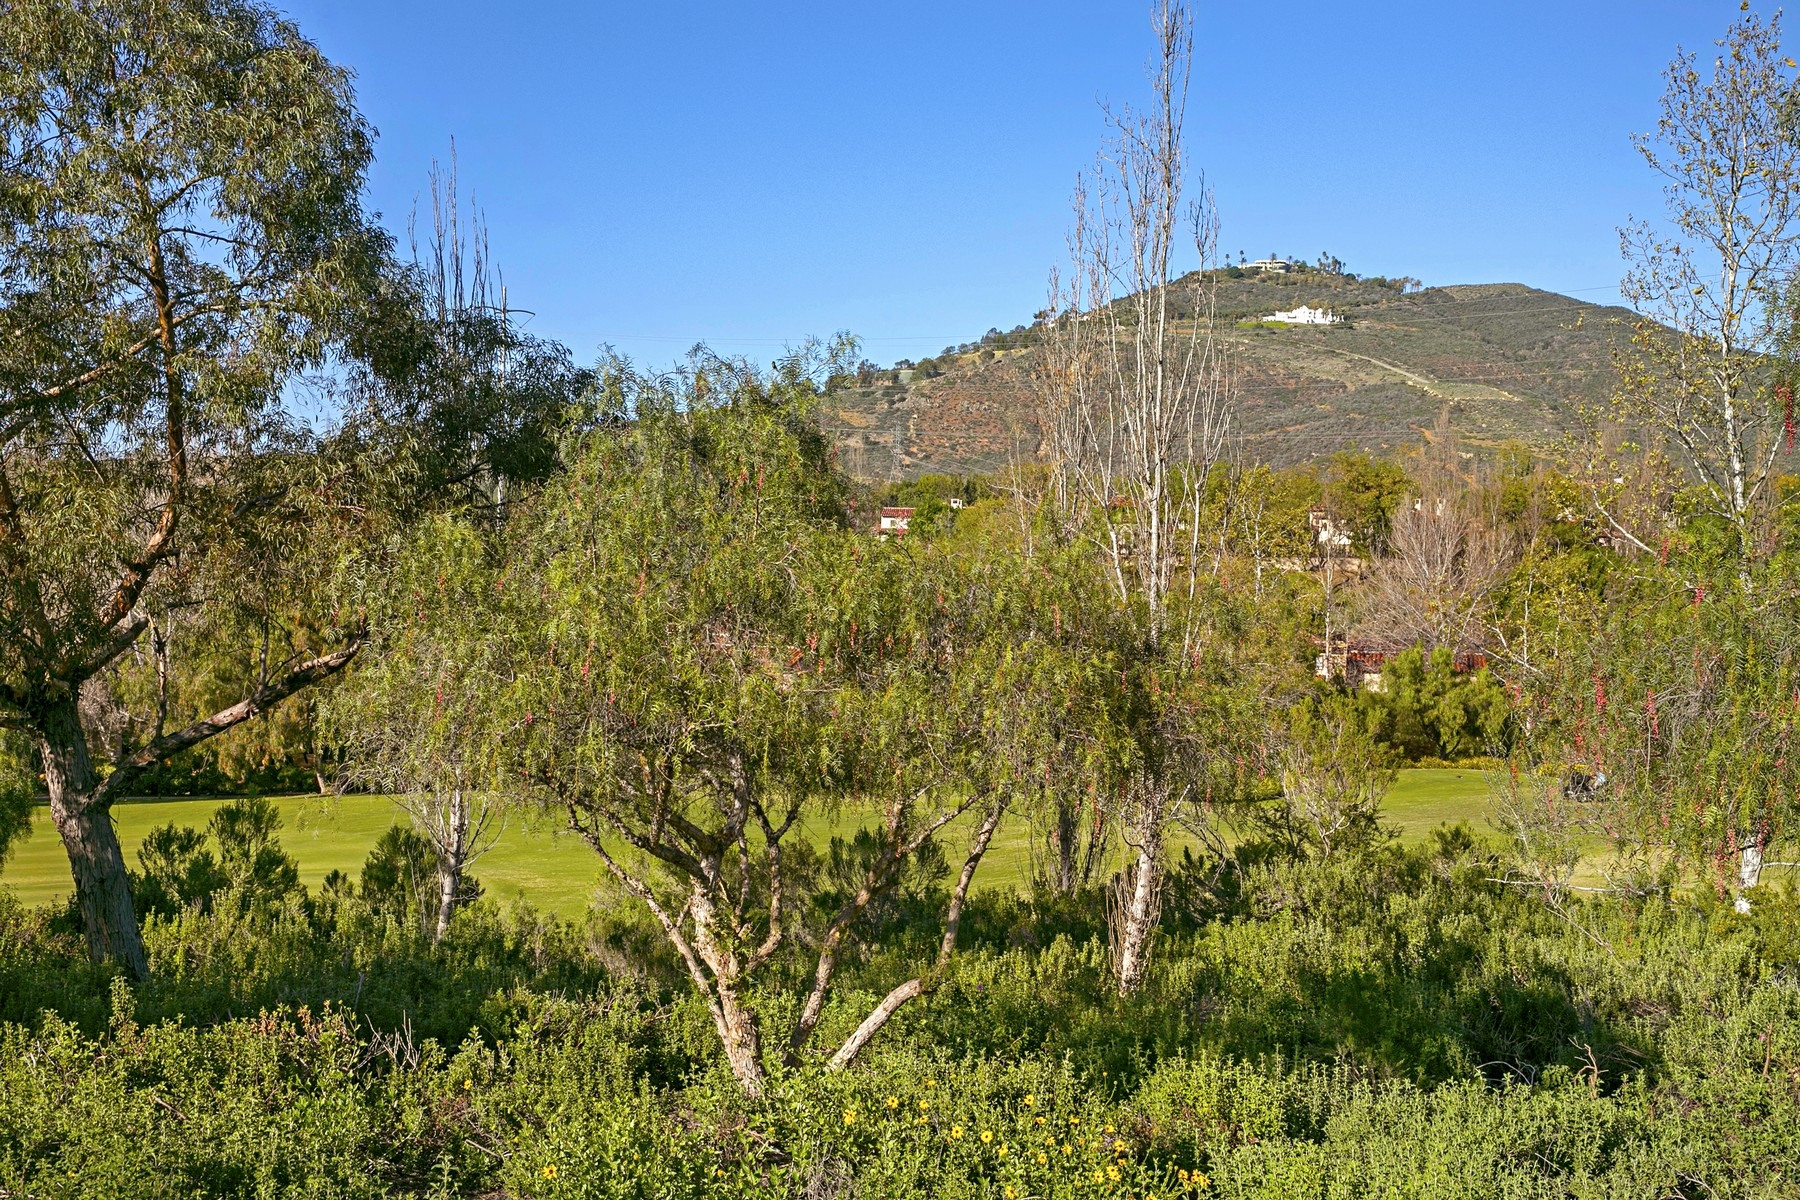 Additional photo for property listing at 18484 Calle La Serra  Rancho Santa Fe, California 92067 United States